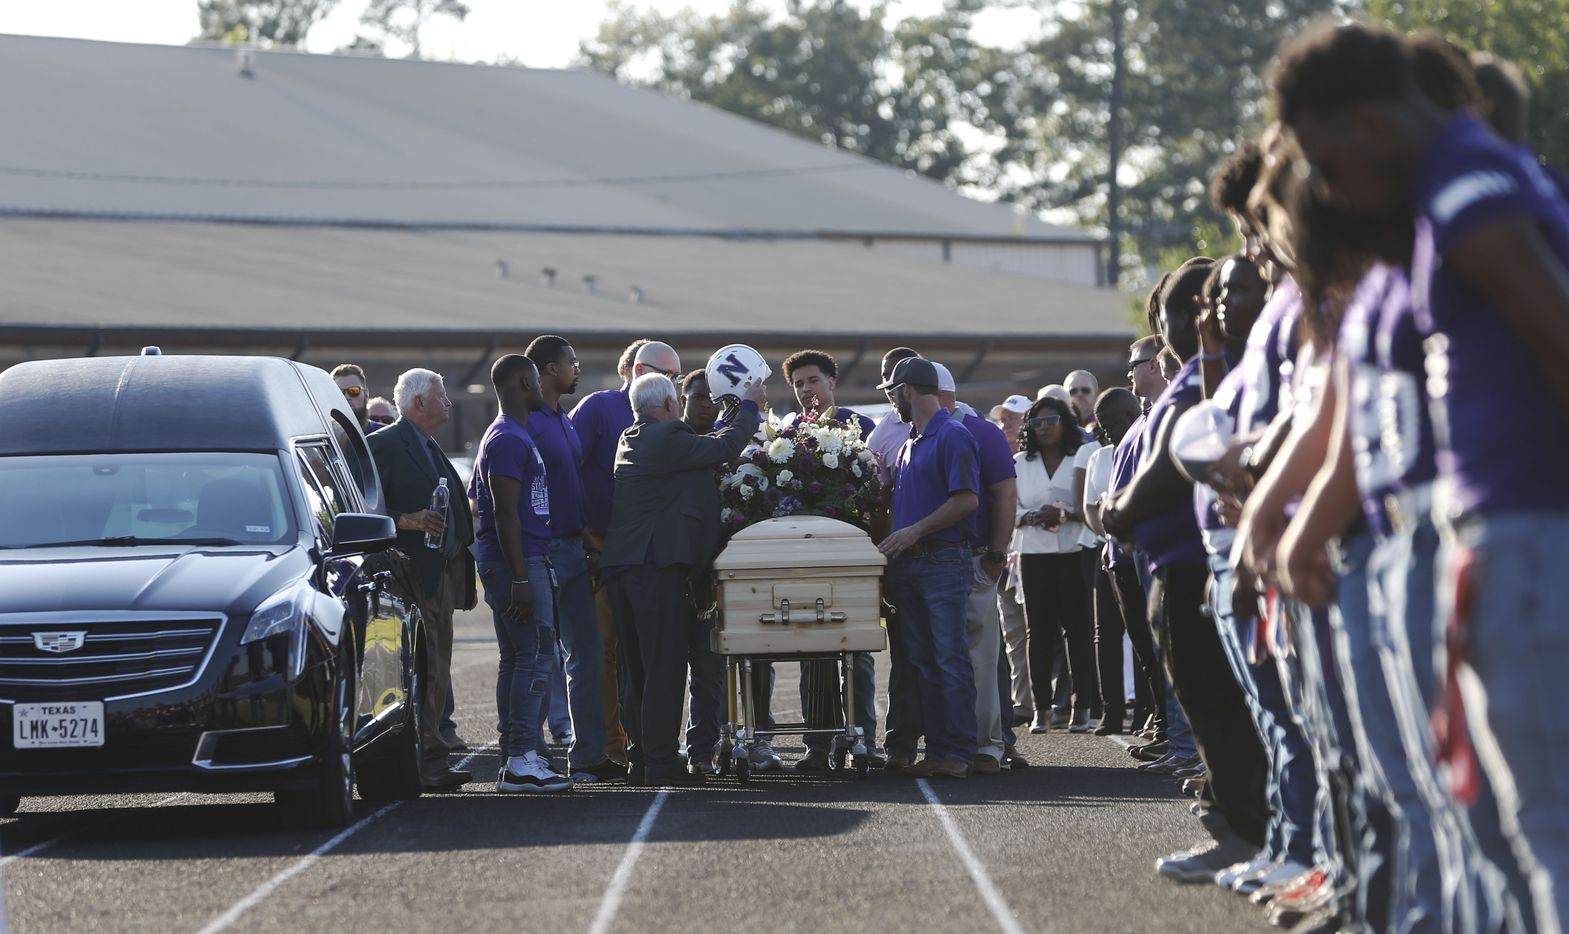 """Pallbearers prepare to take Newton High School head football coach William Theodore """"W.T."""" Johnston onto the field for his memorial service at Curtis Barbay Field at Newton High School in Newton, Texas on Wednesday, May 15, 2019. (Vernon Bryant/The Dallas Morning News)"""